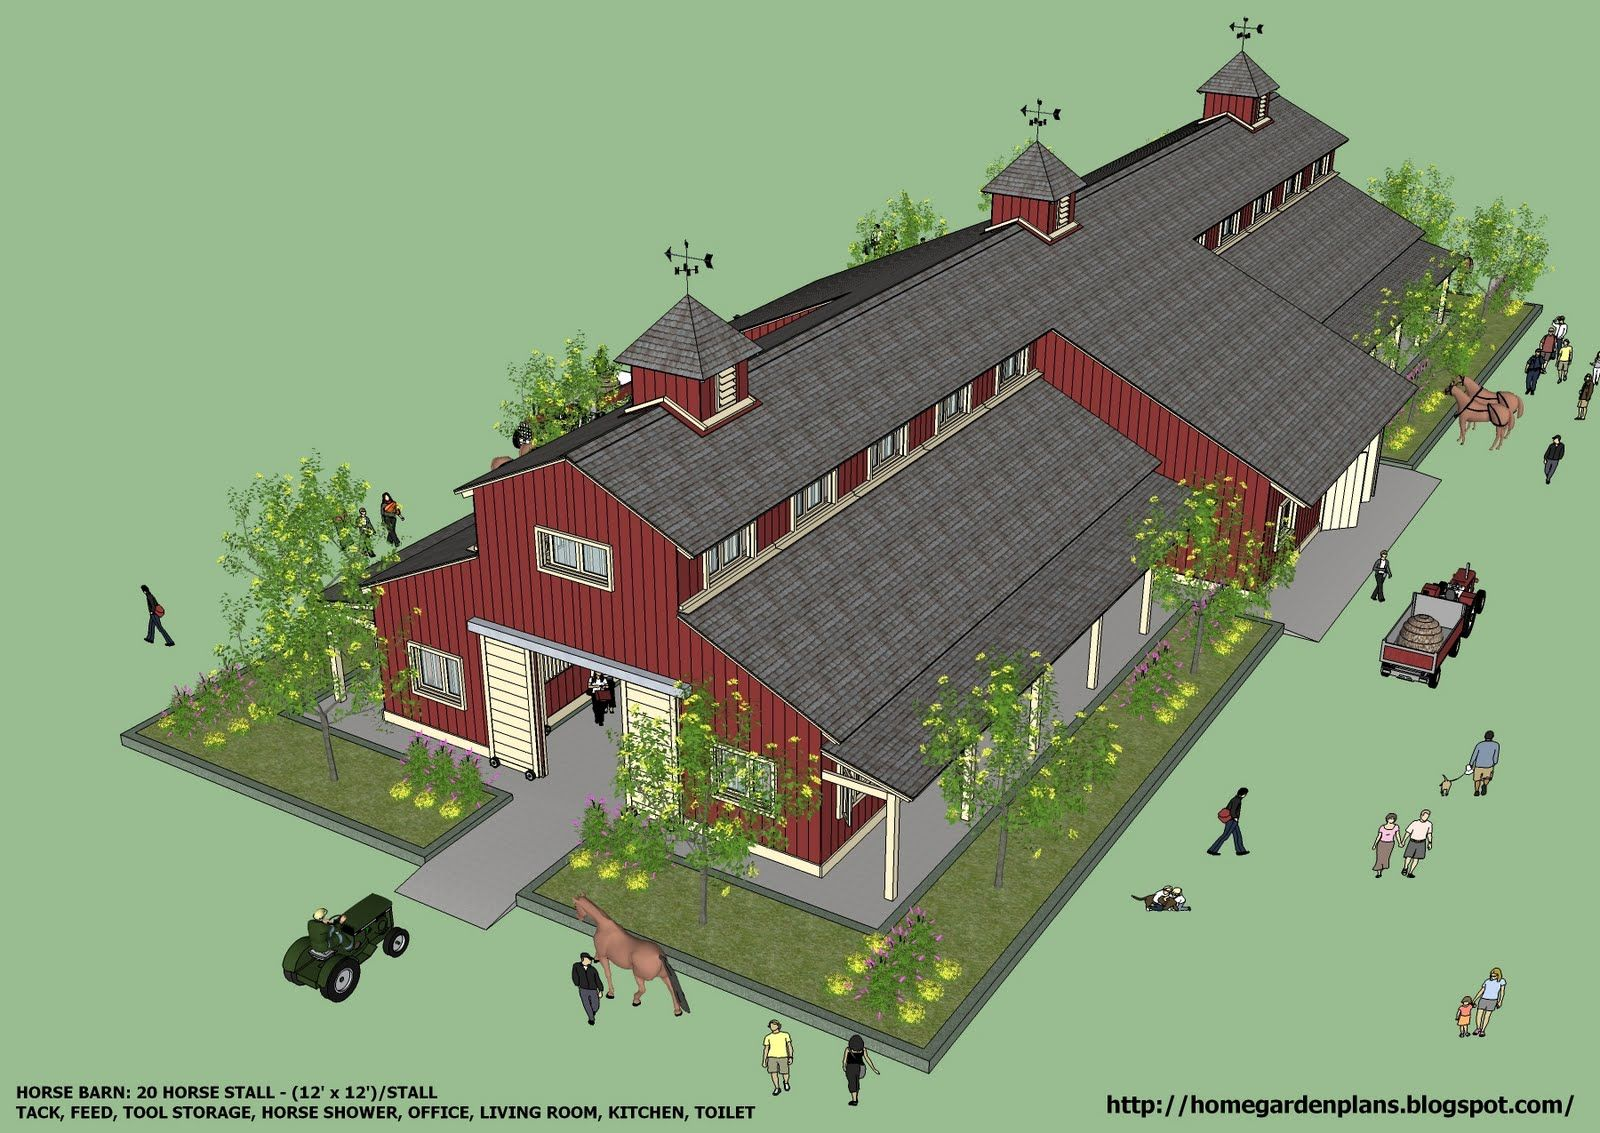 Leave room on the property in case we want to build a for Equestrian barn plans